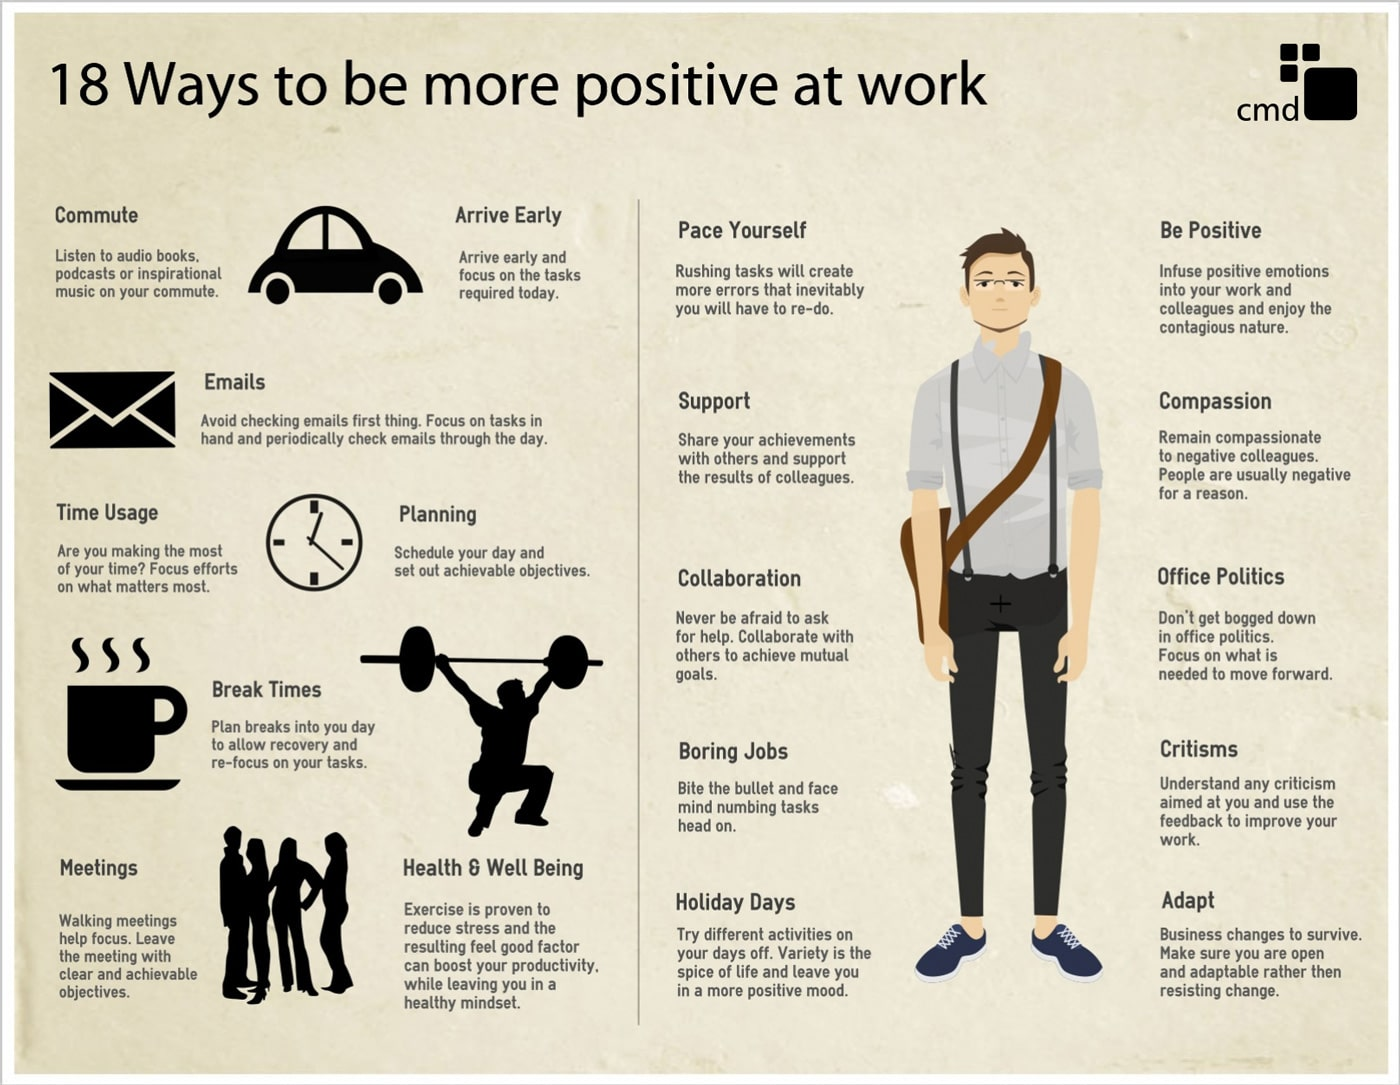 3 cool ways to work